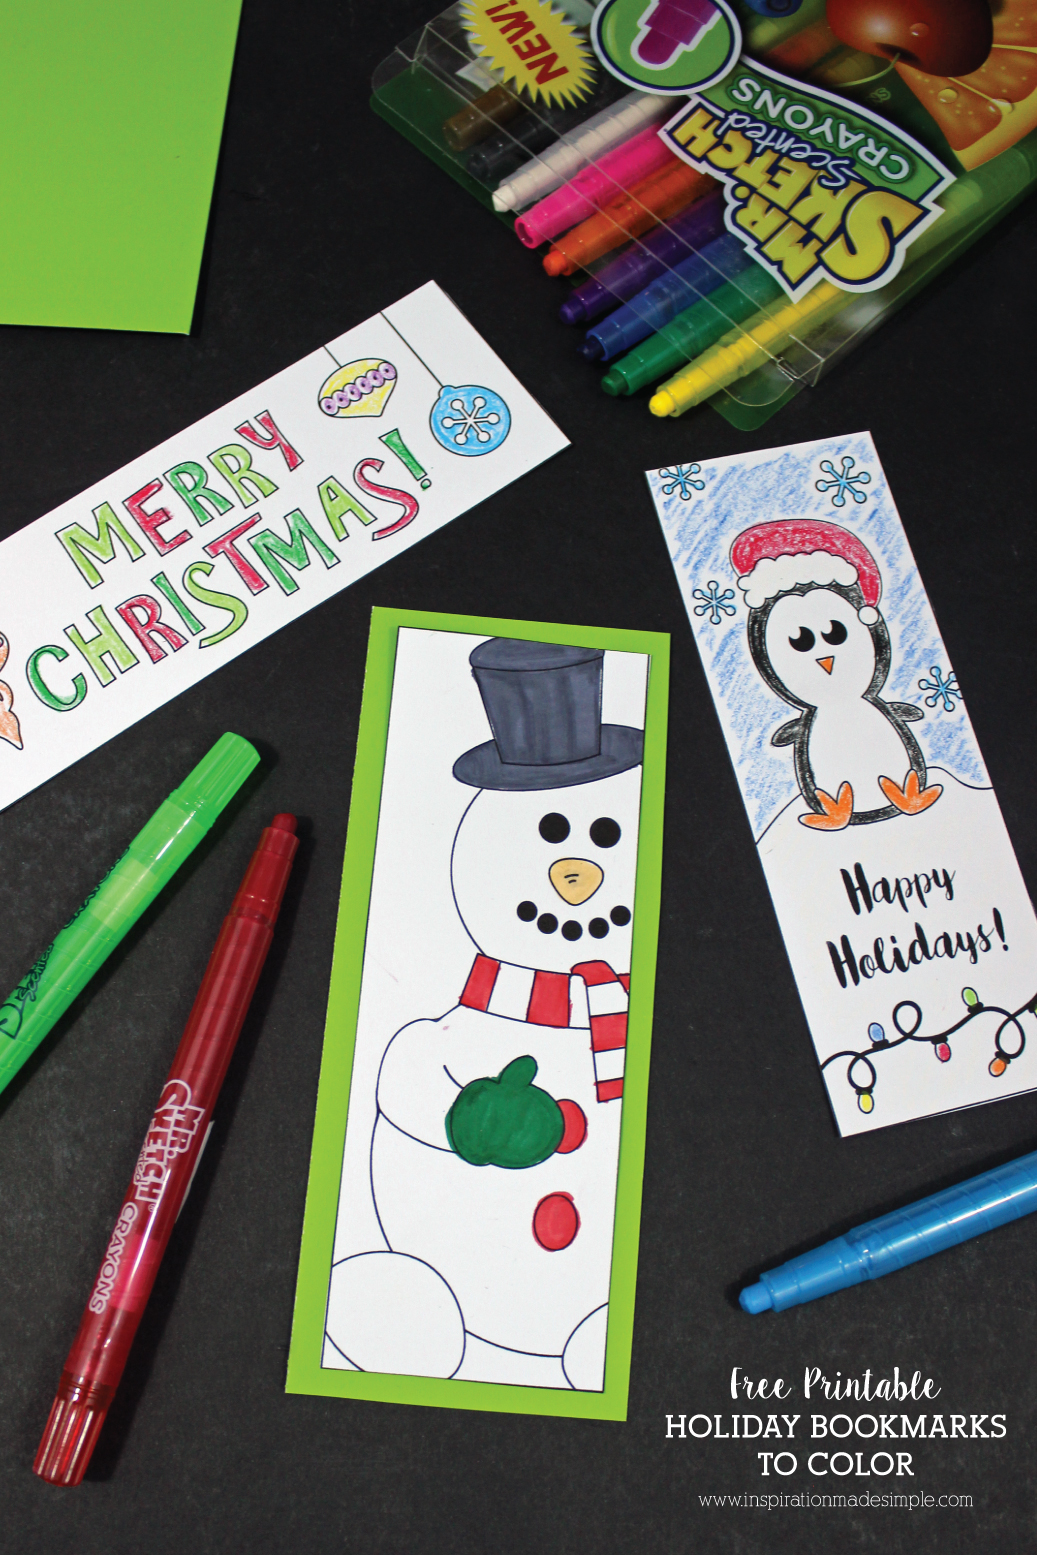 Printable Holiday Bookmarks to Color